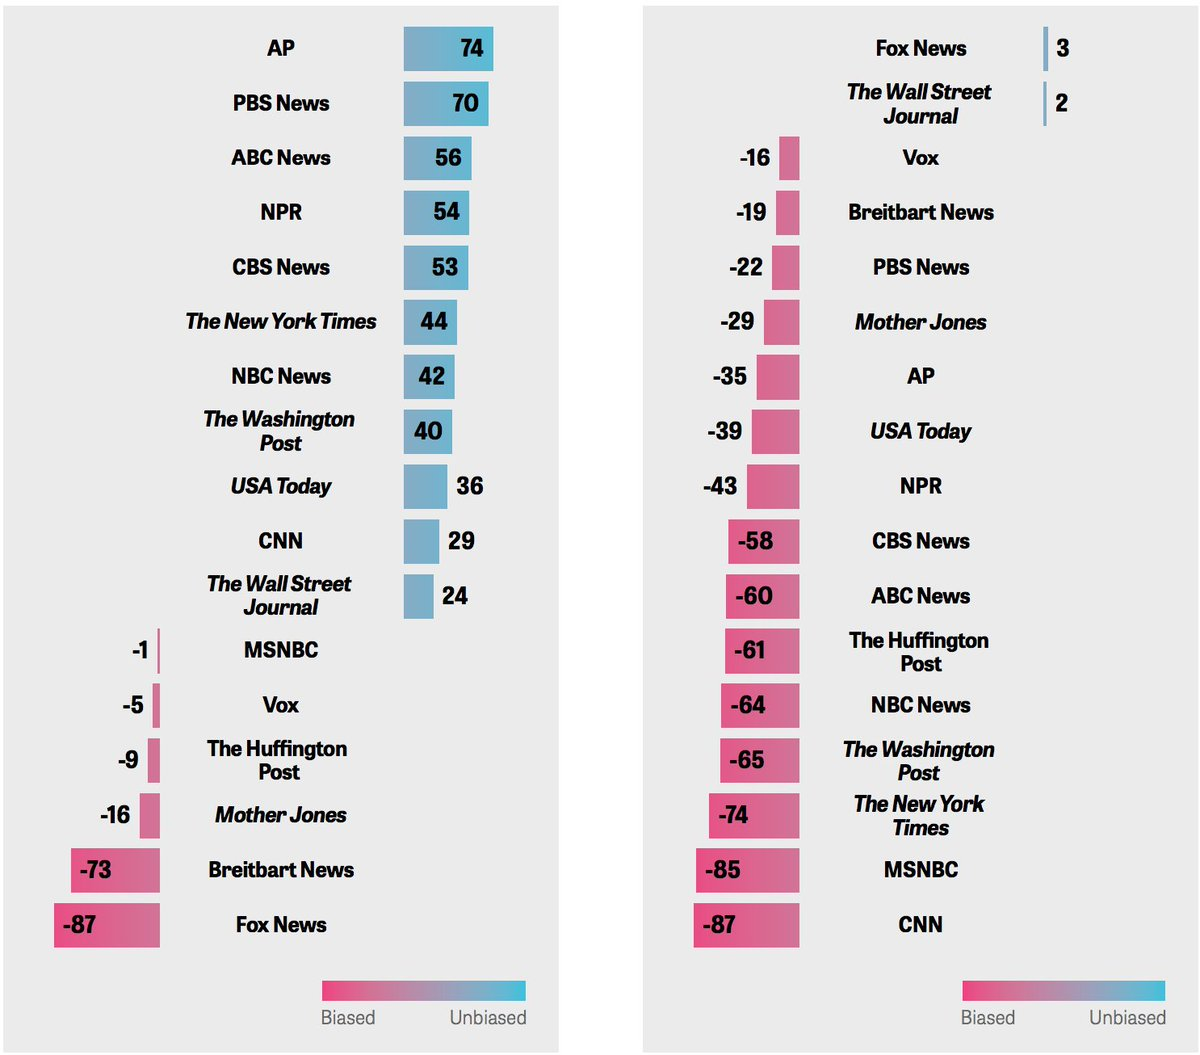 How Democrats (left) and Republicans (right) perceive the 'net bias' in news organizations: https://t.co/2lgxlUkhOK